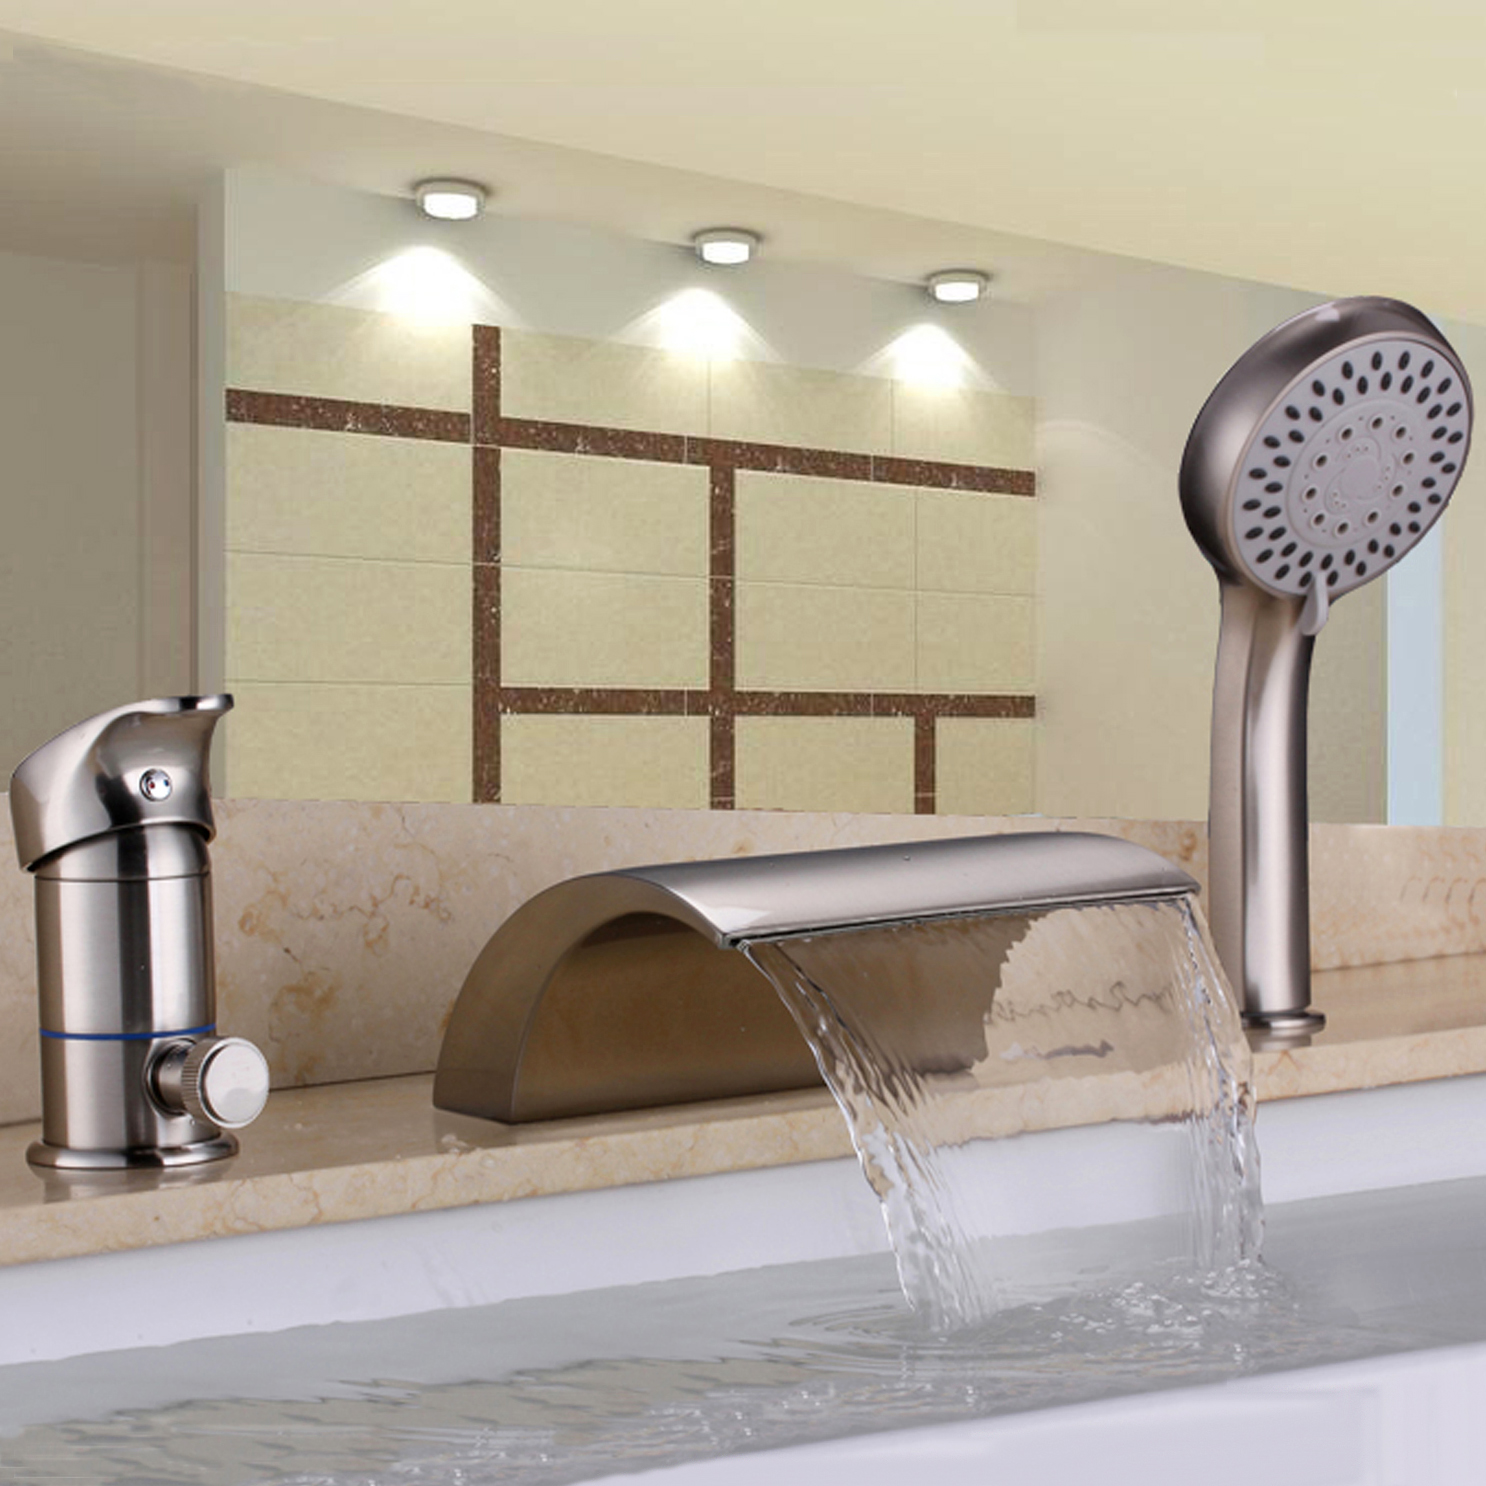 homary deck mount single handle waterfall roman tub faucet with handheld shower in brushed nickel